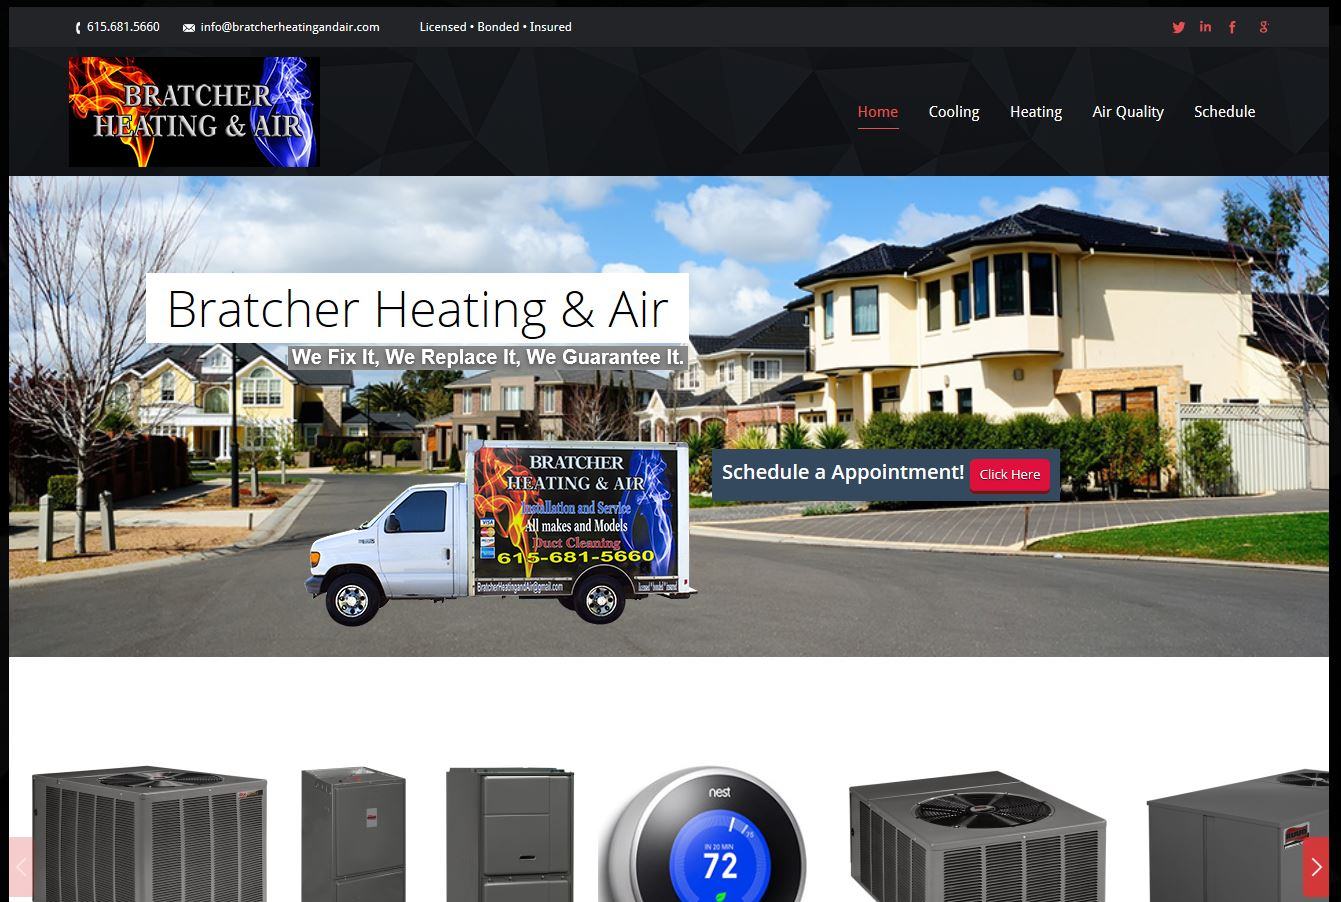 Bratcher Heating & Air Website